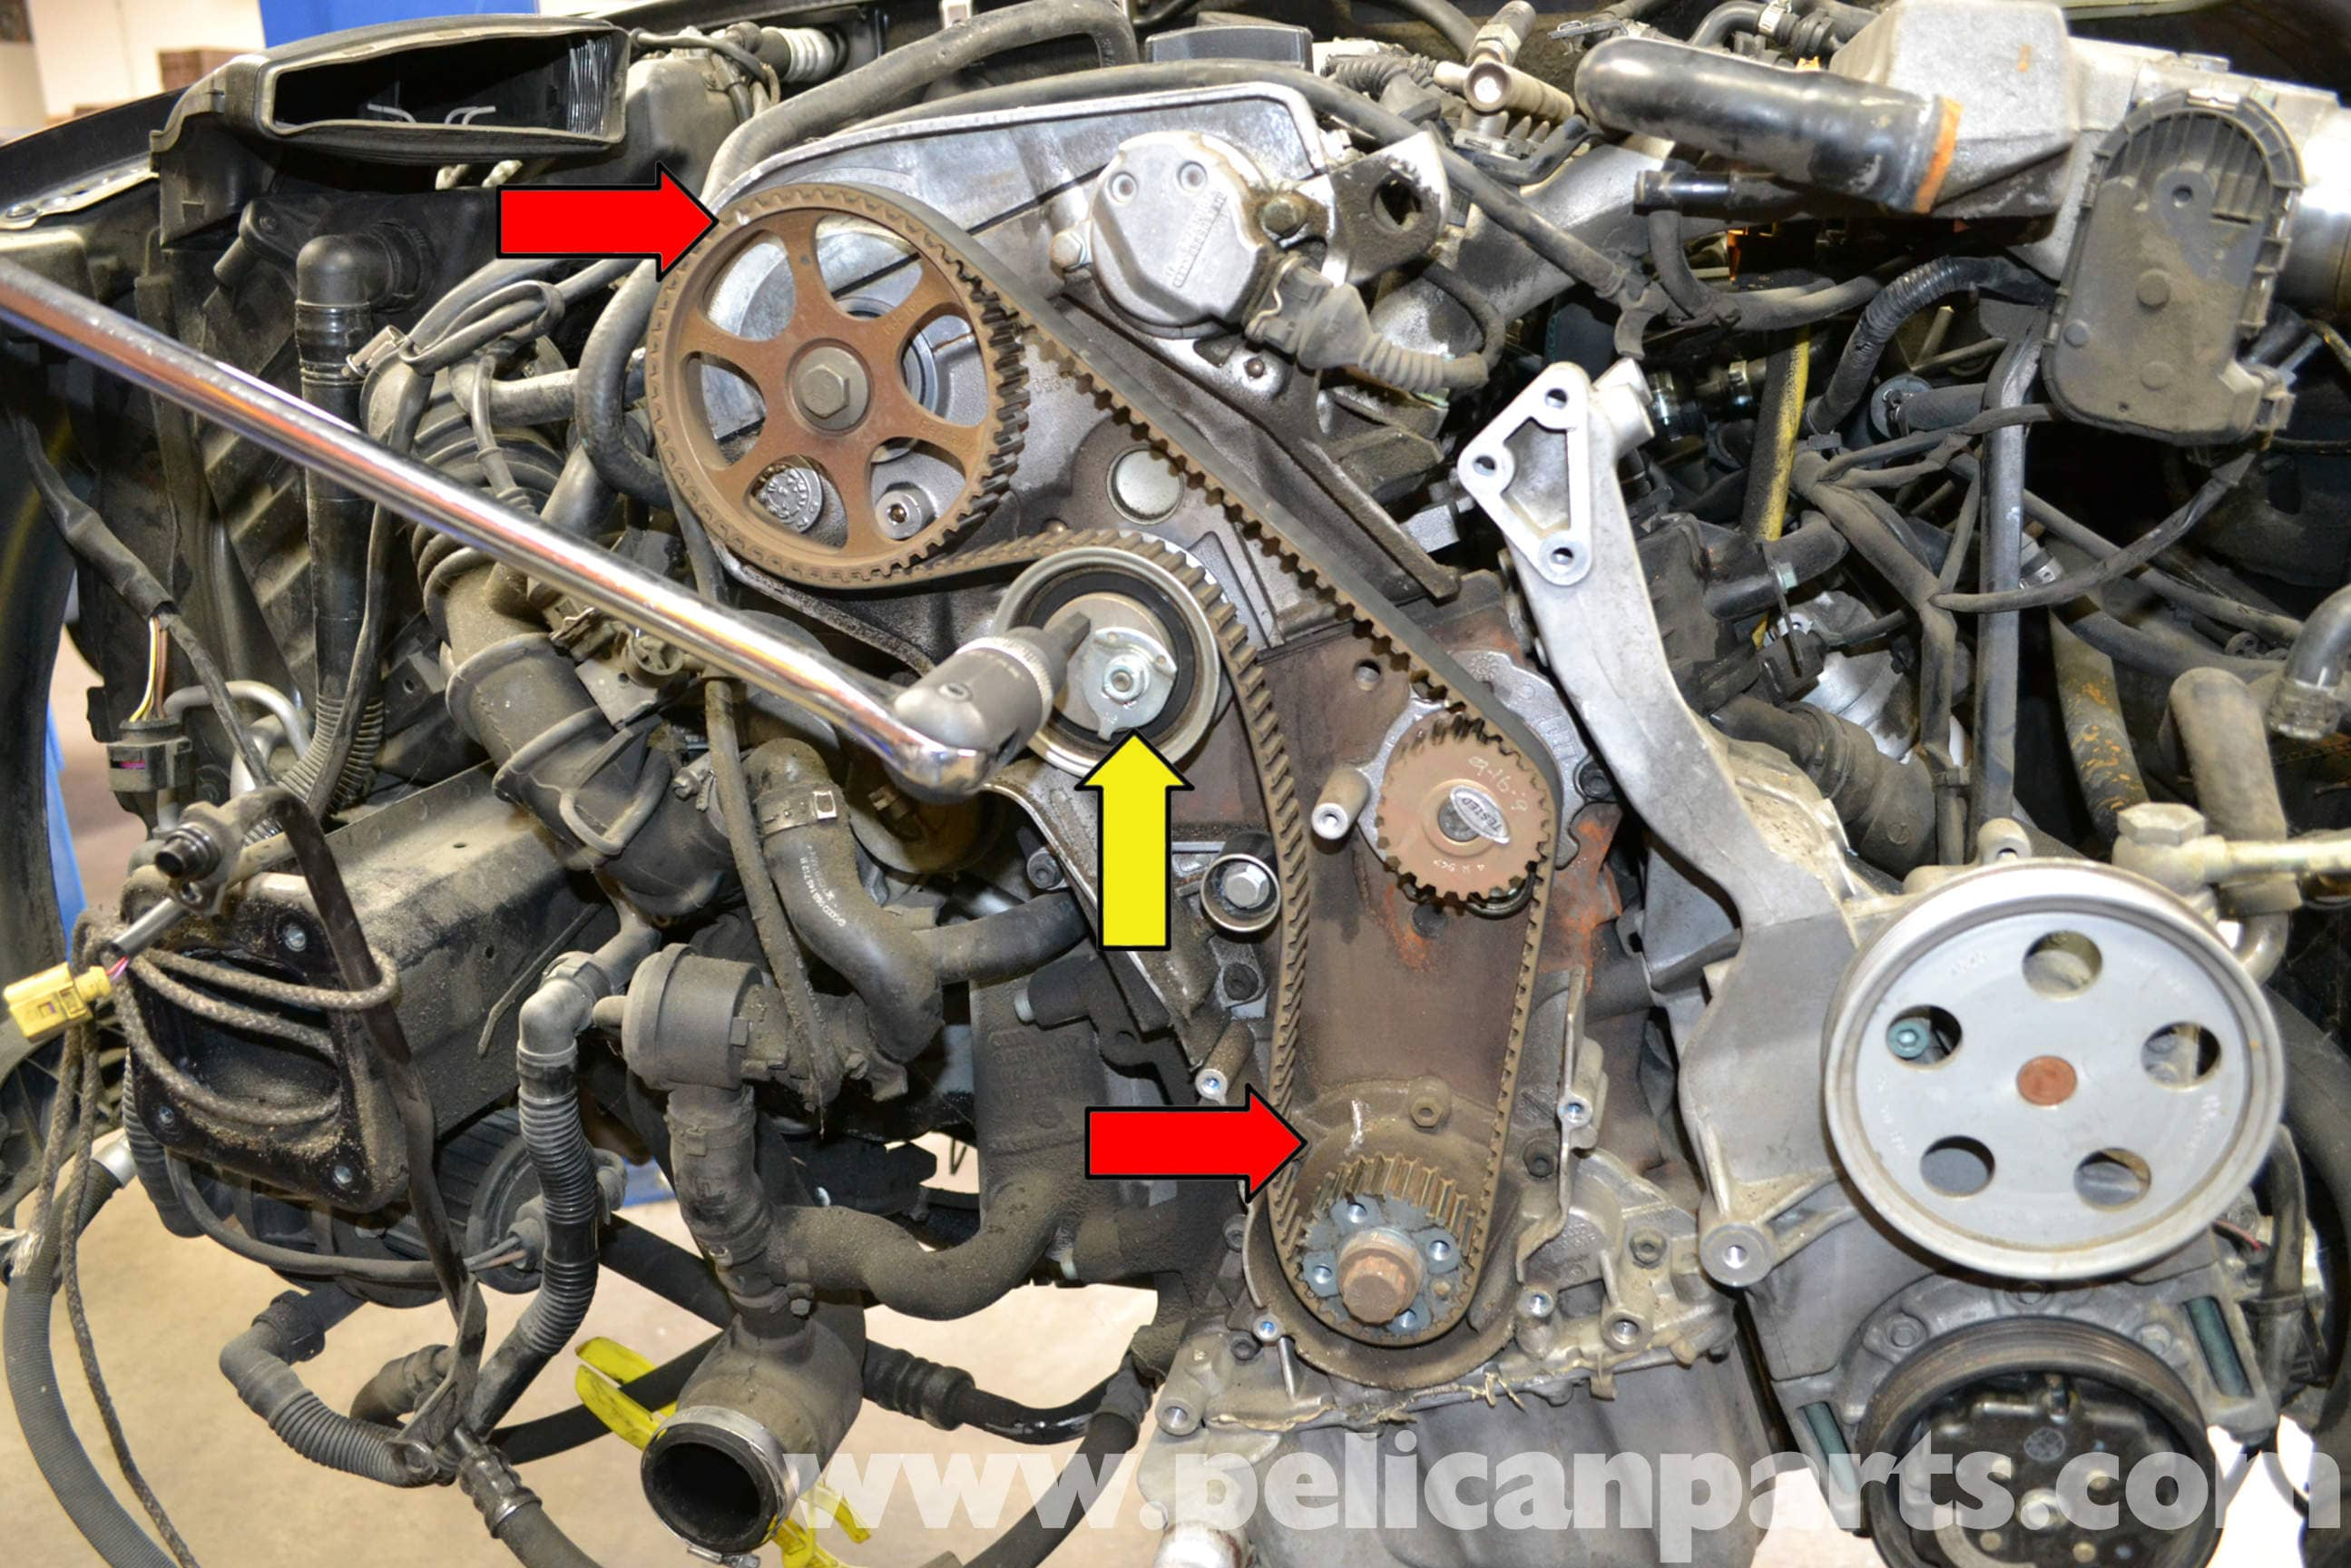 Audi A4 B6 Timing Belt Replacement (1.8T 2002-2008 ...